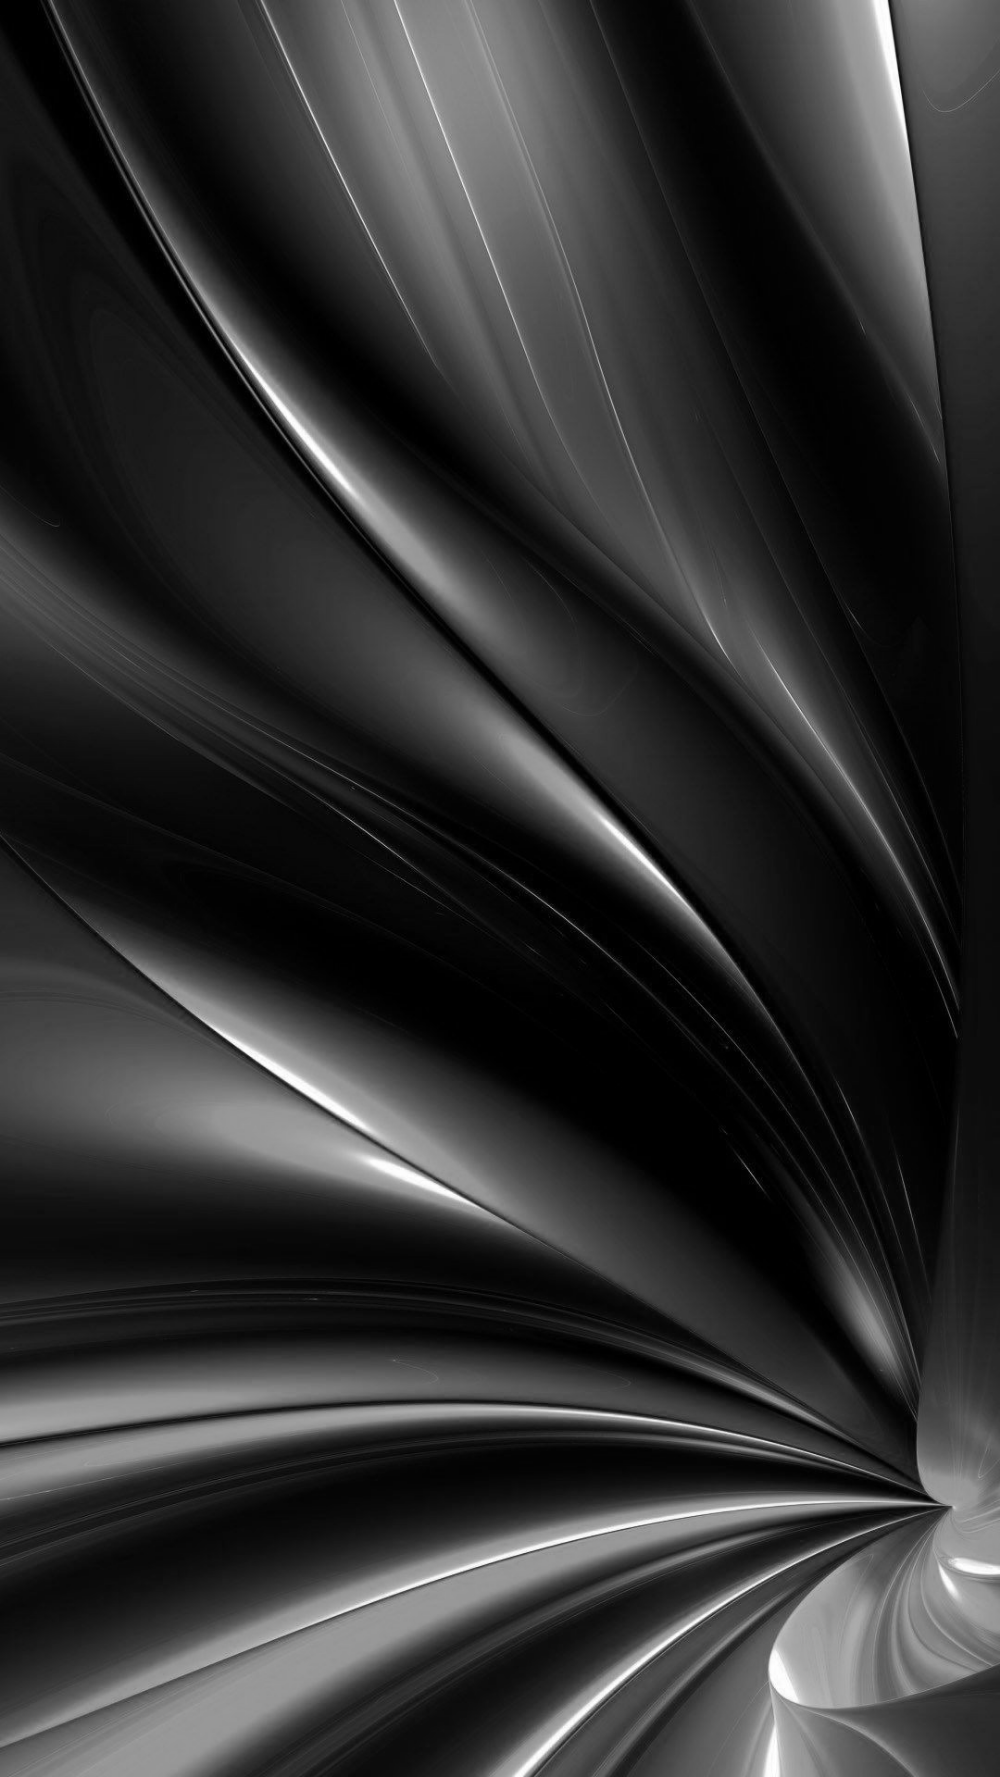 Download 52 Best 3d Dark Wallpapers For Mobile Ashueffects Dark Wallpaper Hd Dark Wallpapers Backgrounds Phone Wallpapers